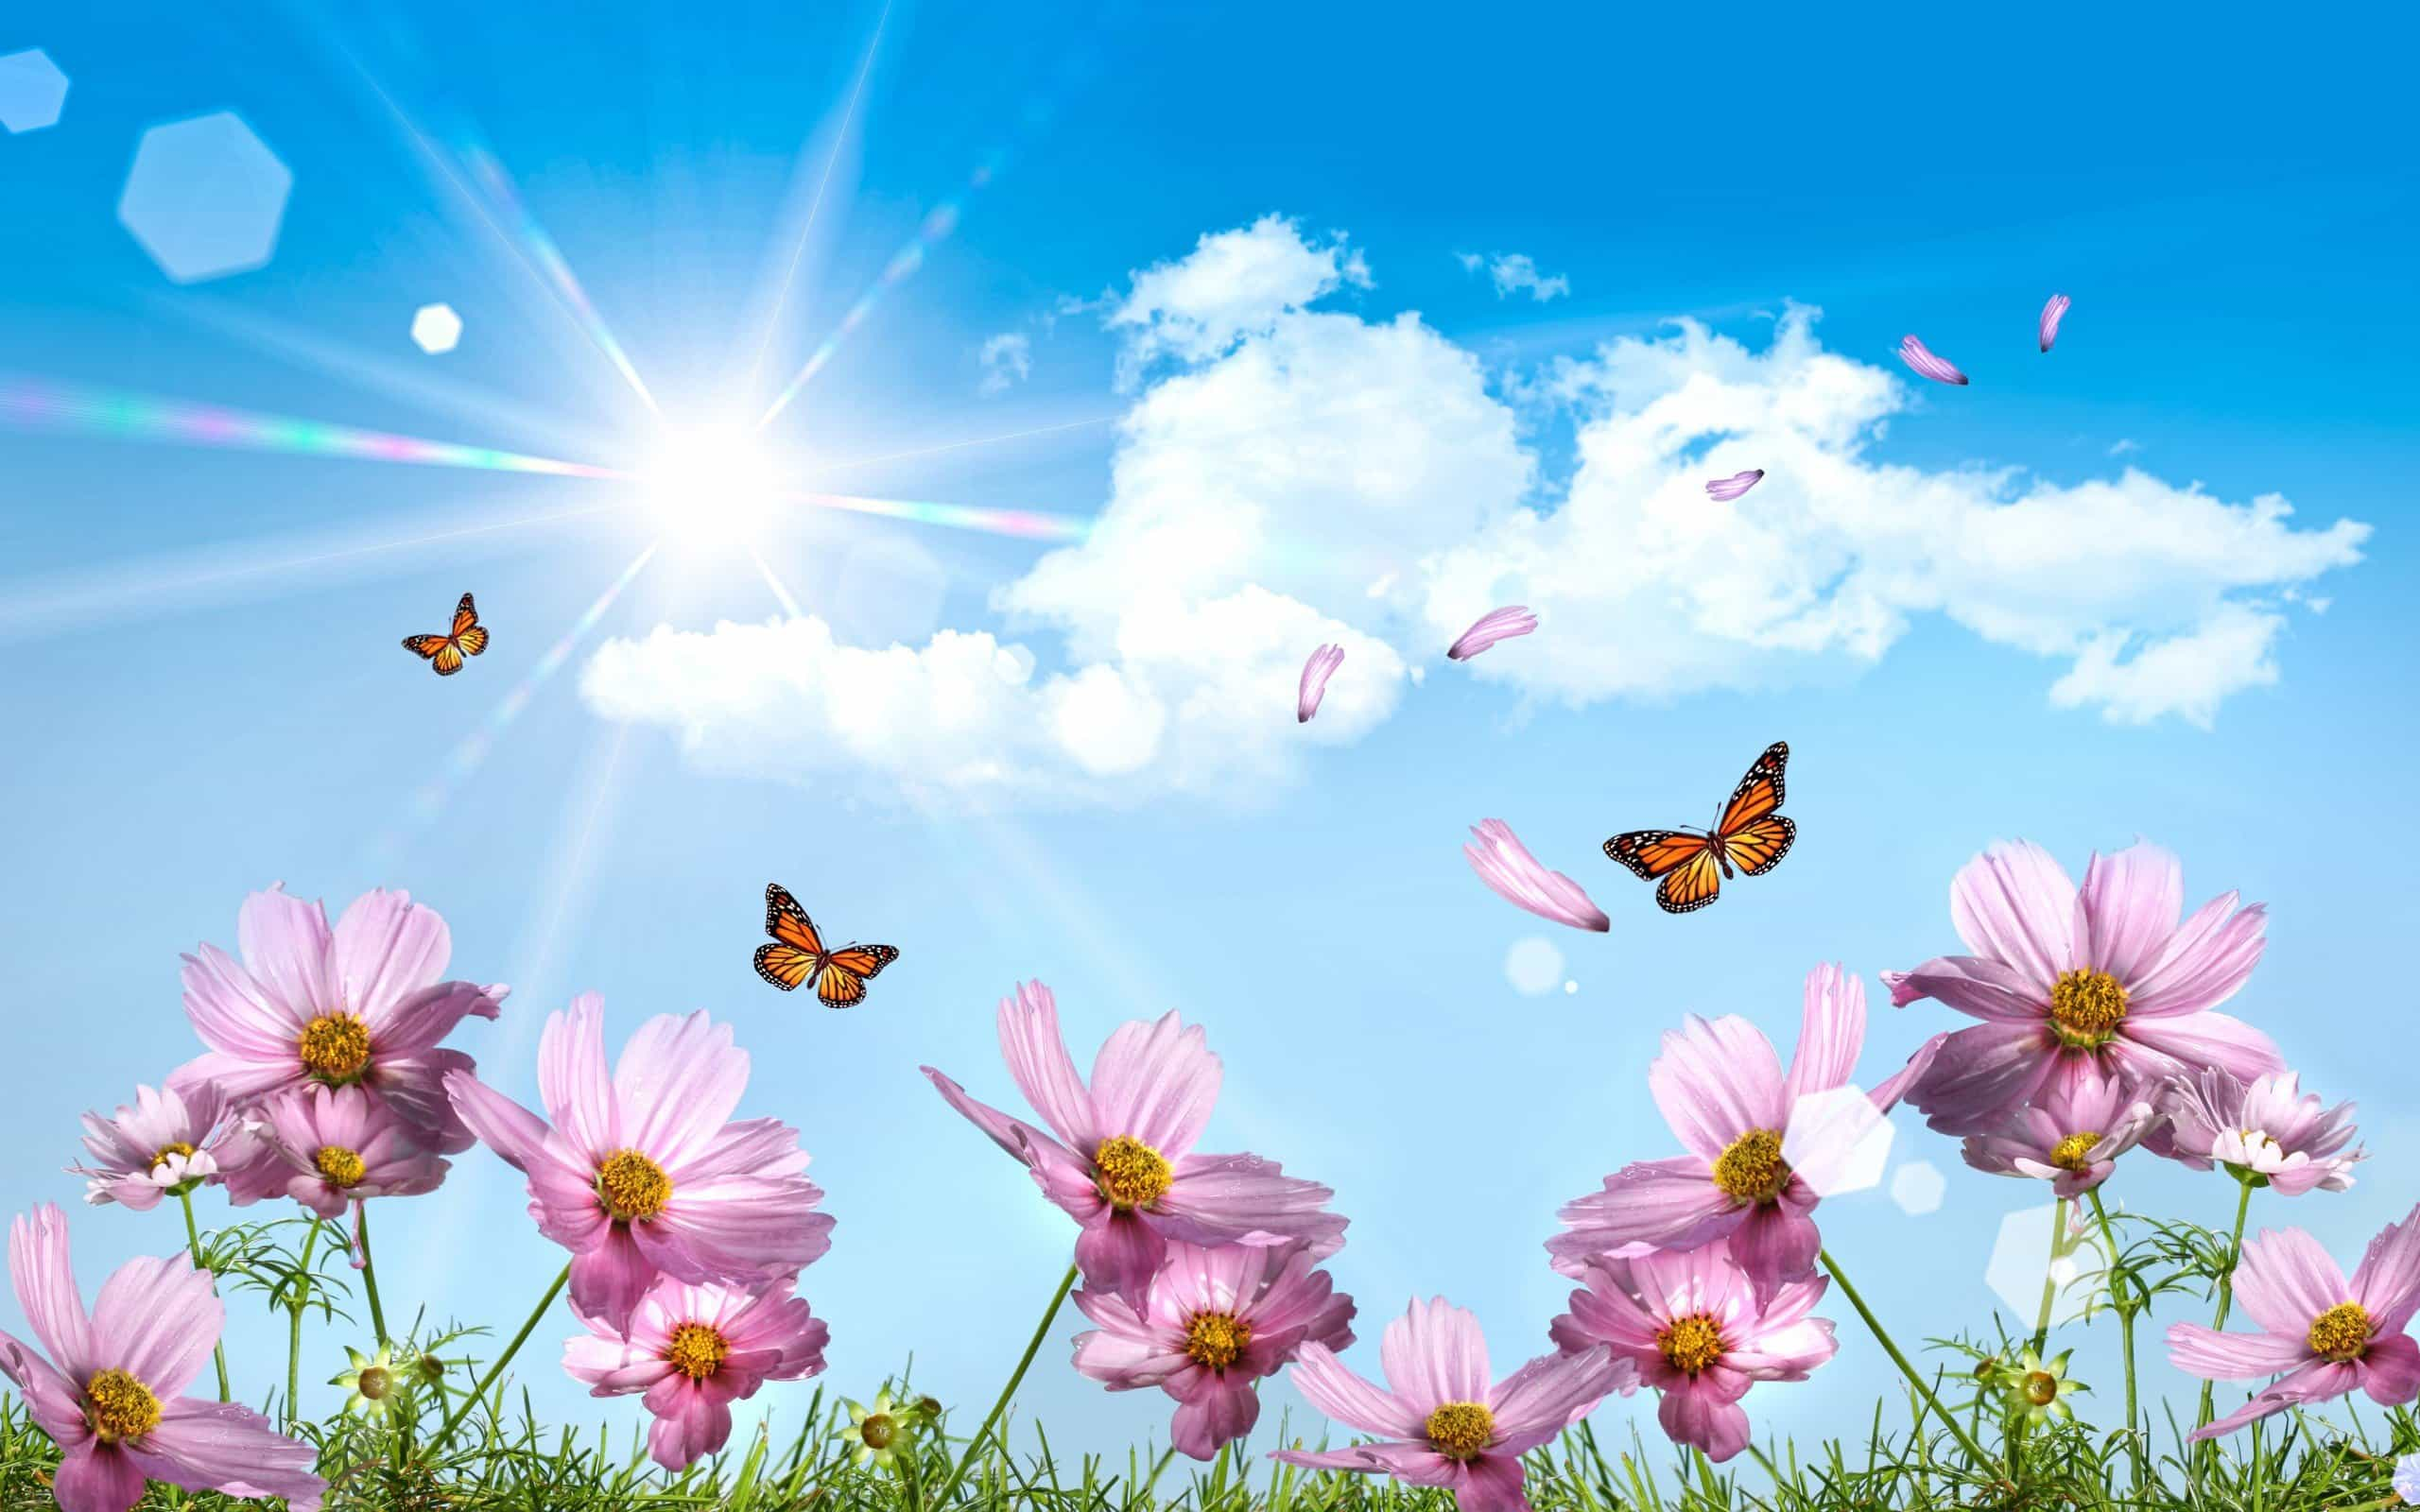 photoshop_butterflies_and_petals_083360_